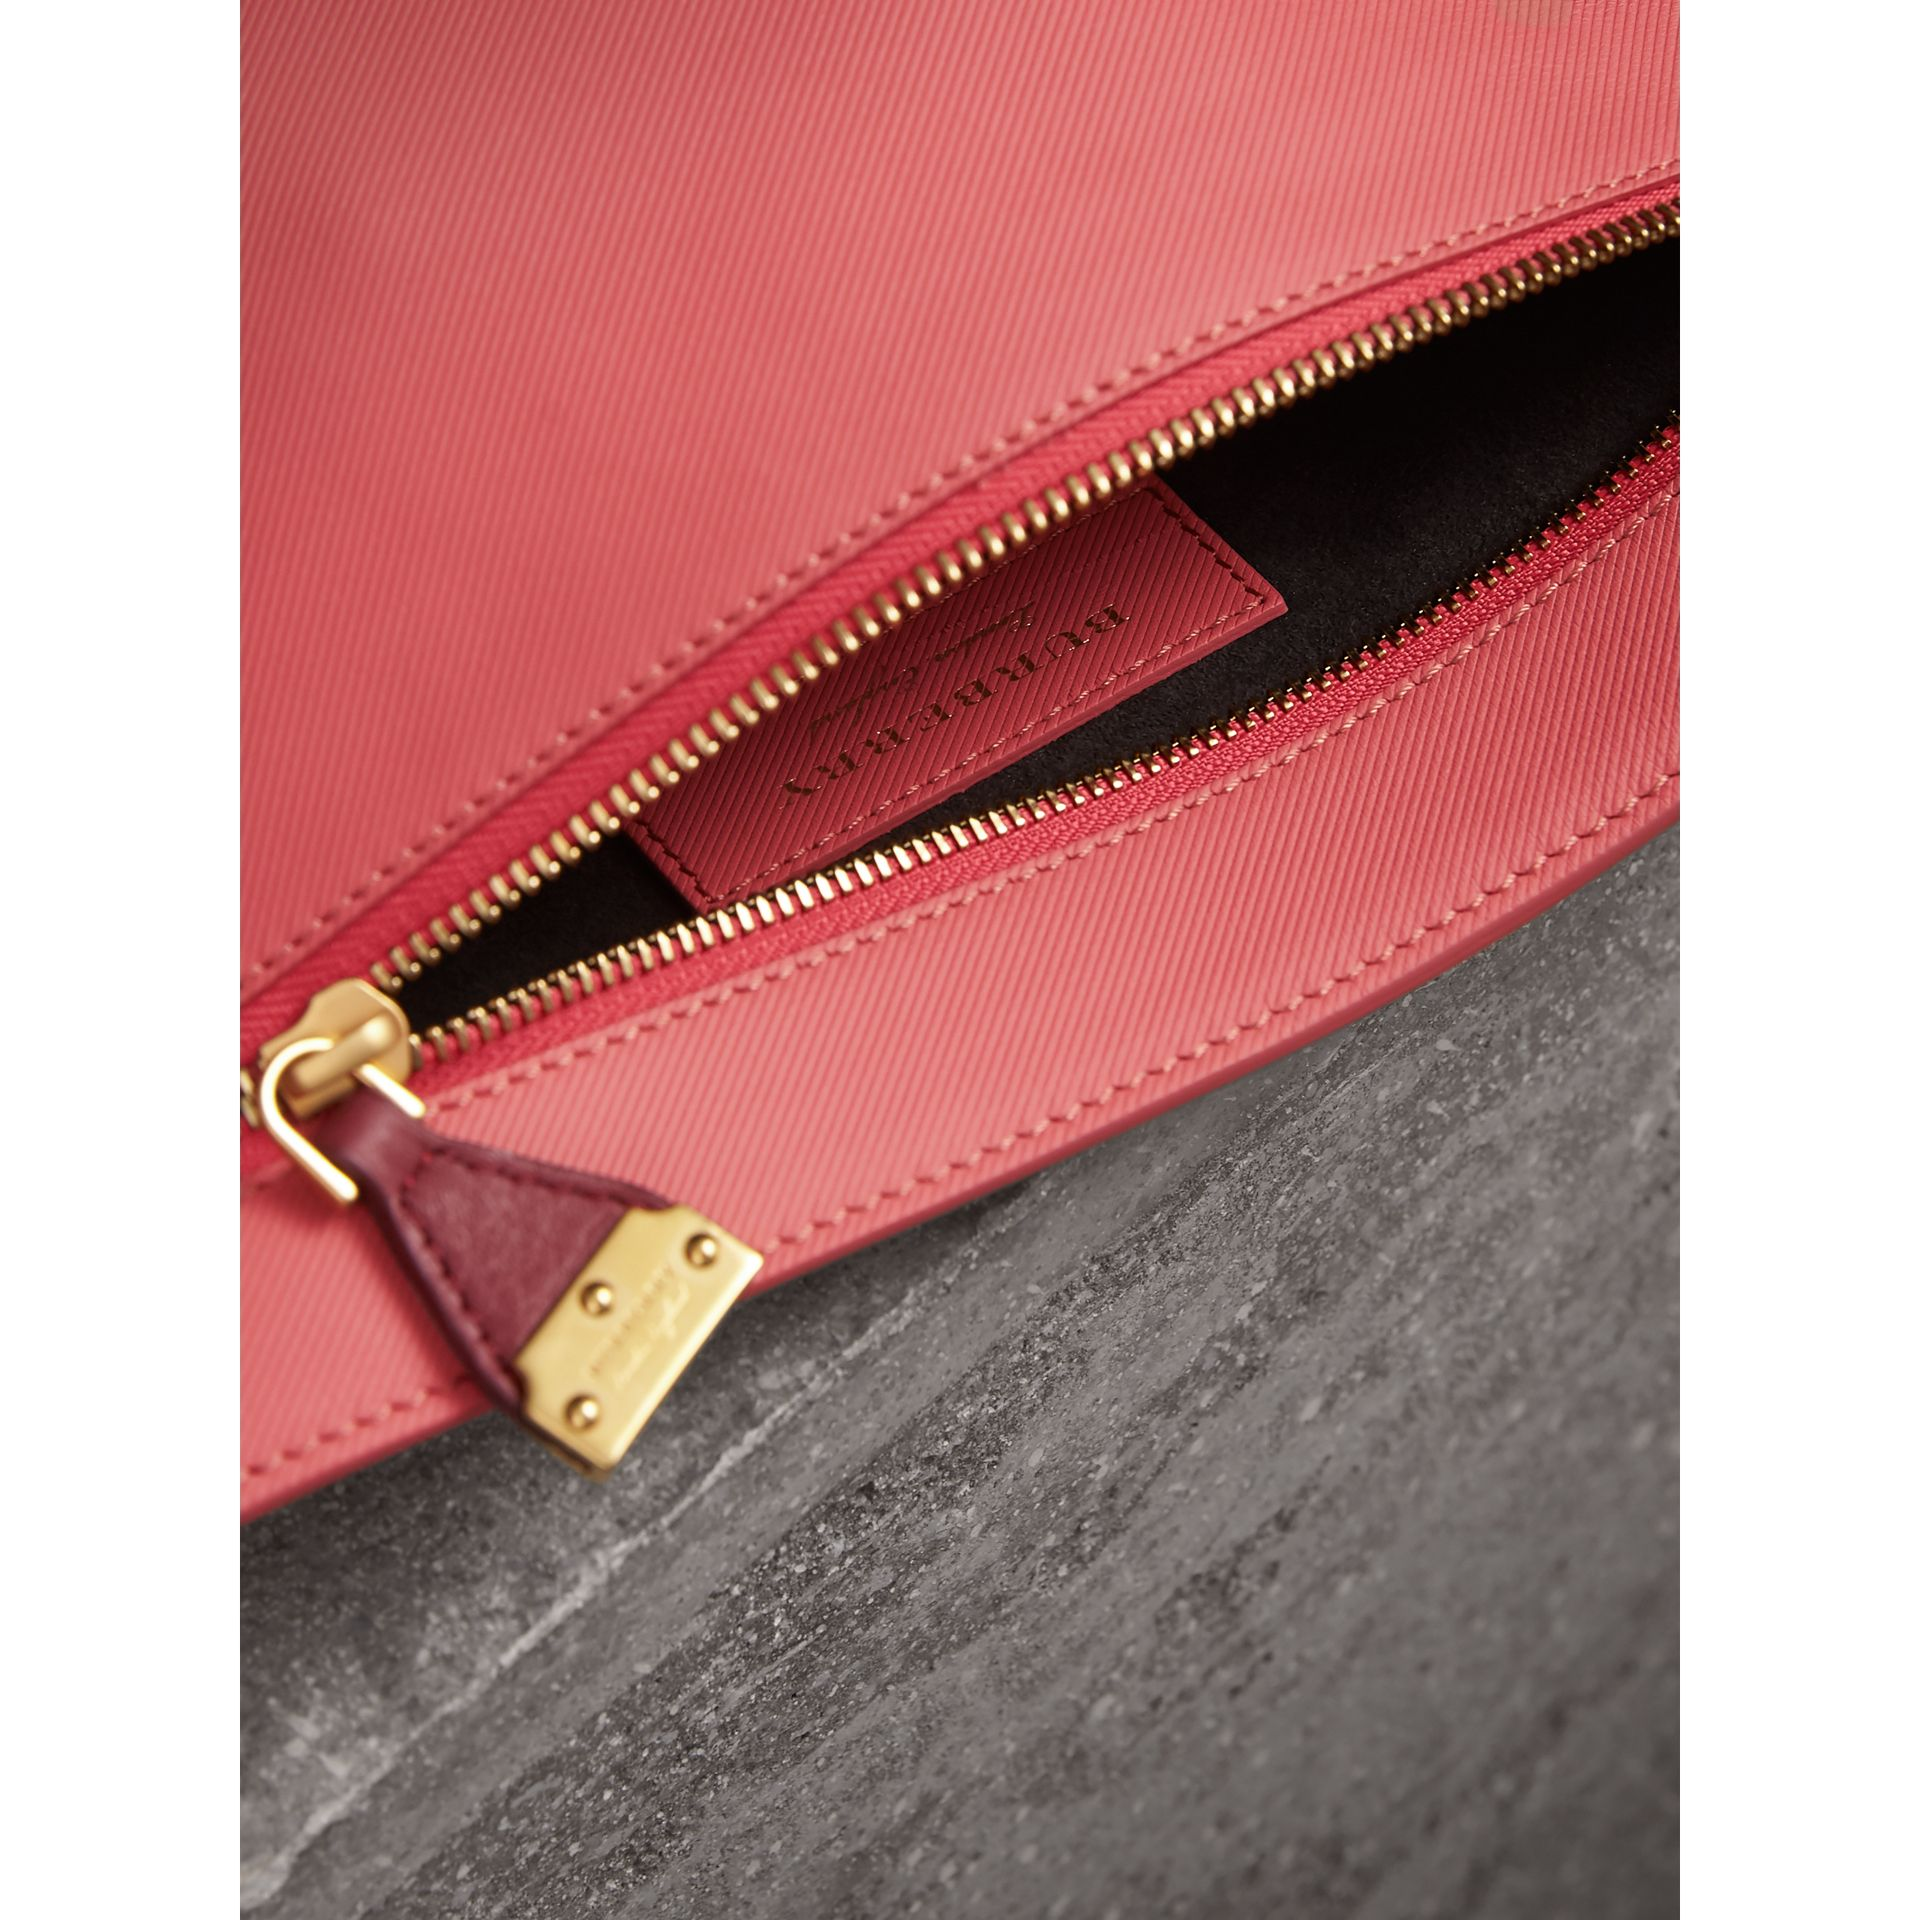 Two-tone Trench Leather Wristlet Pouch in Blossom Pink/antique Red - Women | Burberry United States - gallery image 5